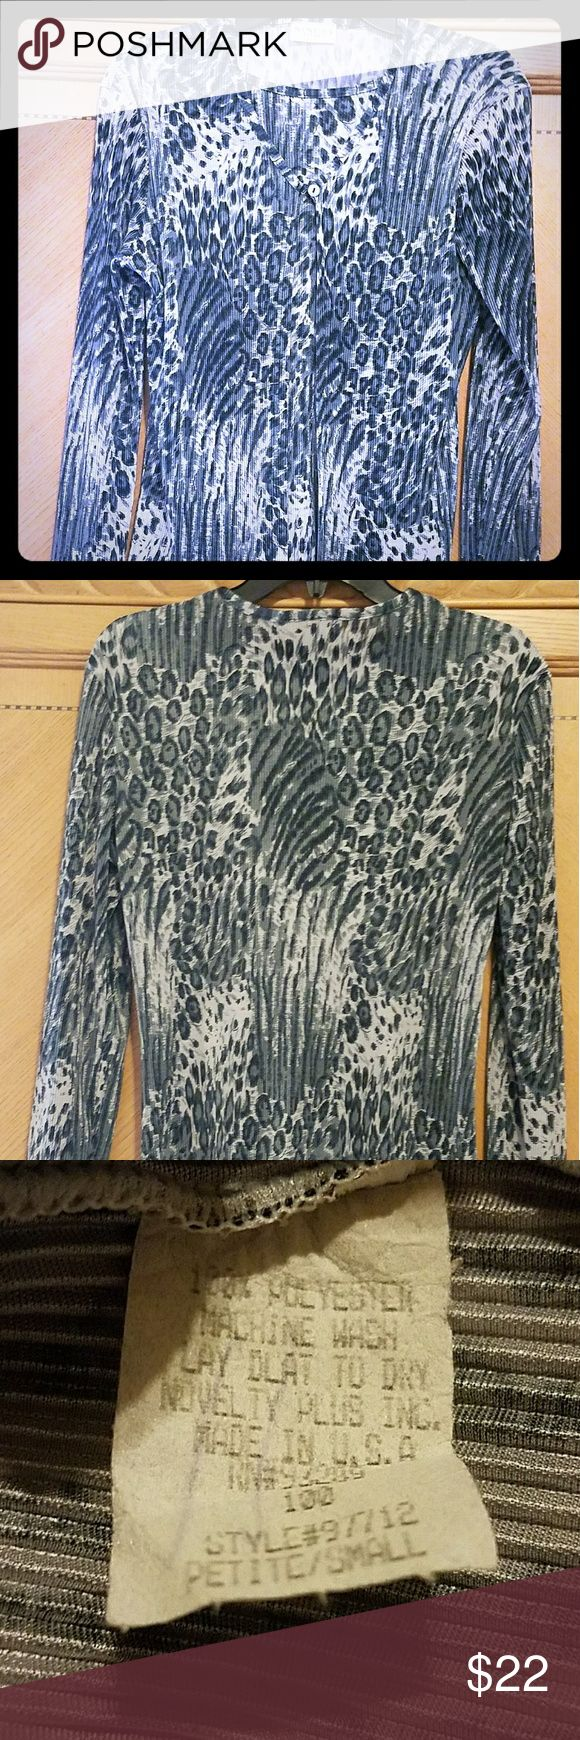 NINETY PETITES TOP Beautiful black/gray one piece with a two piece look pearl button at top of blouse NWOT NINETY PETITES Tops